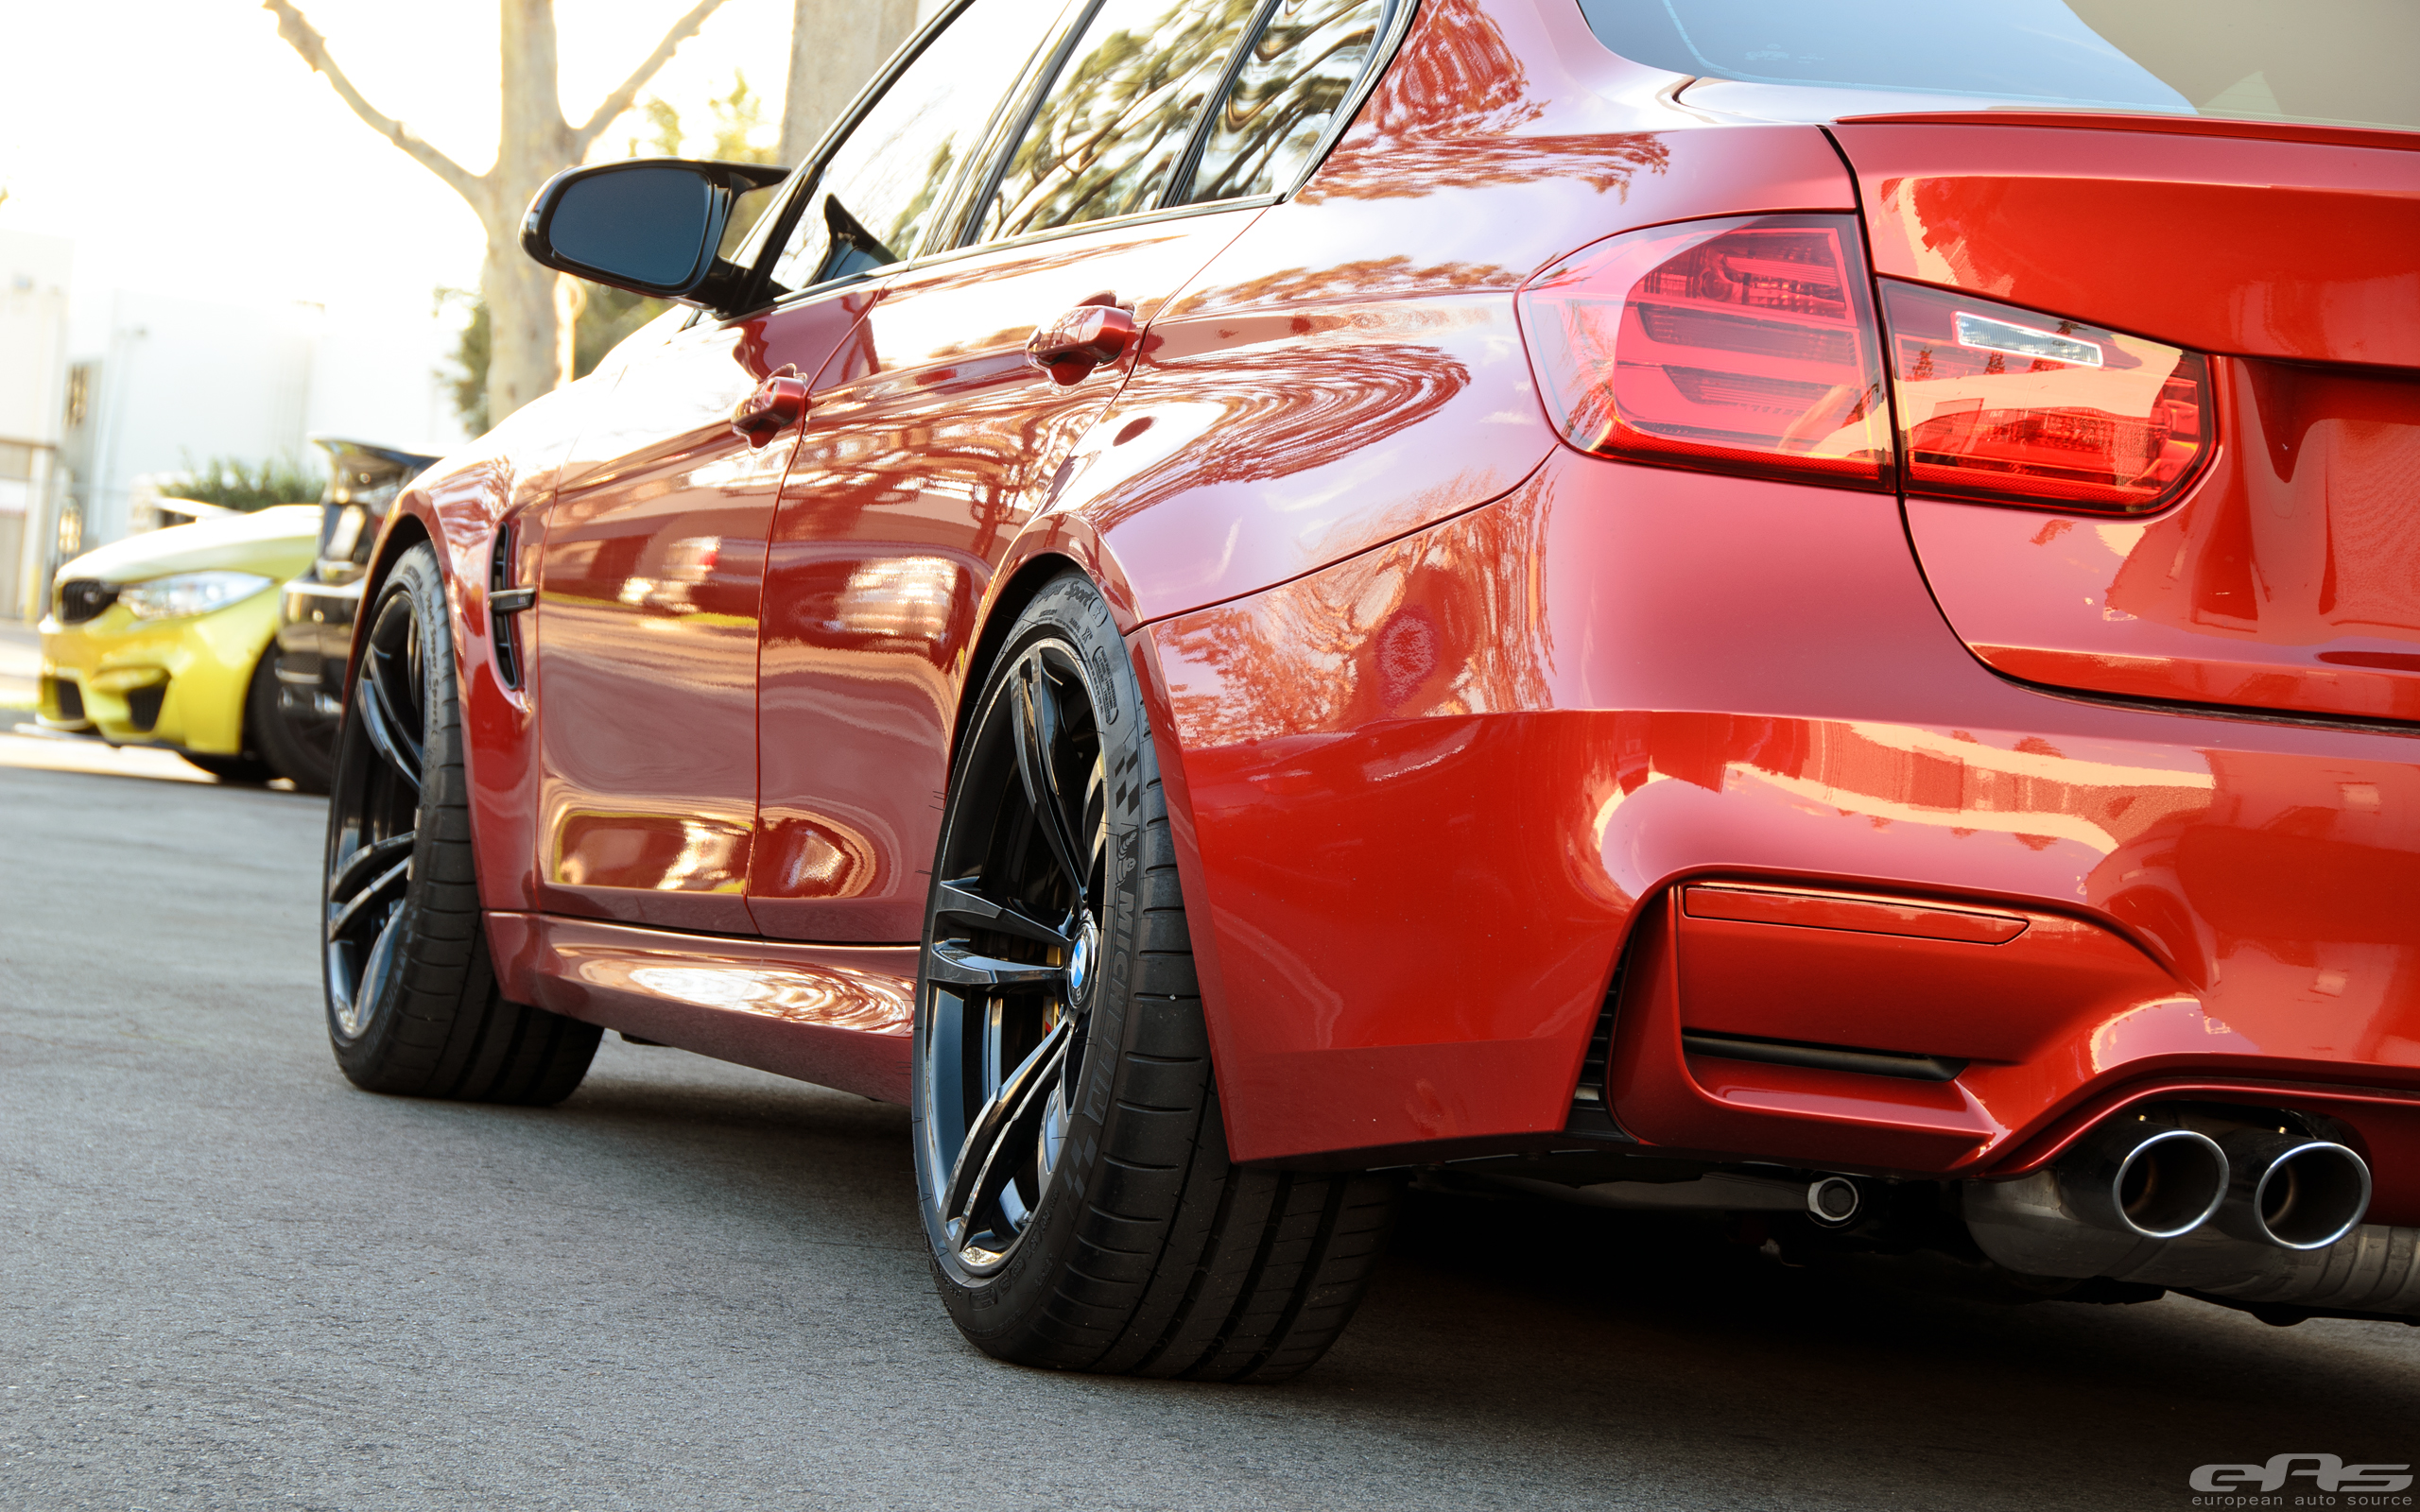 A Beautiful Sakhir Orange Bmw F80 M3 Gets A Few Modifications